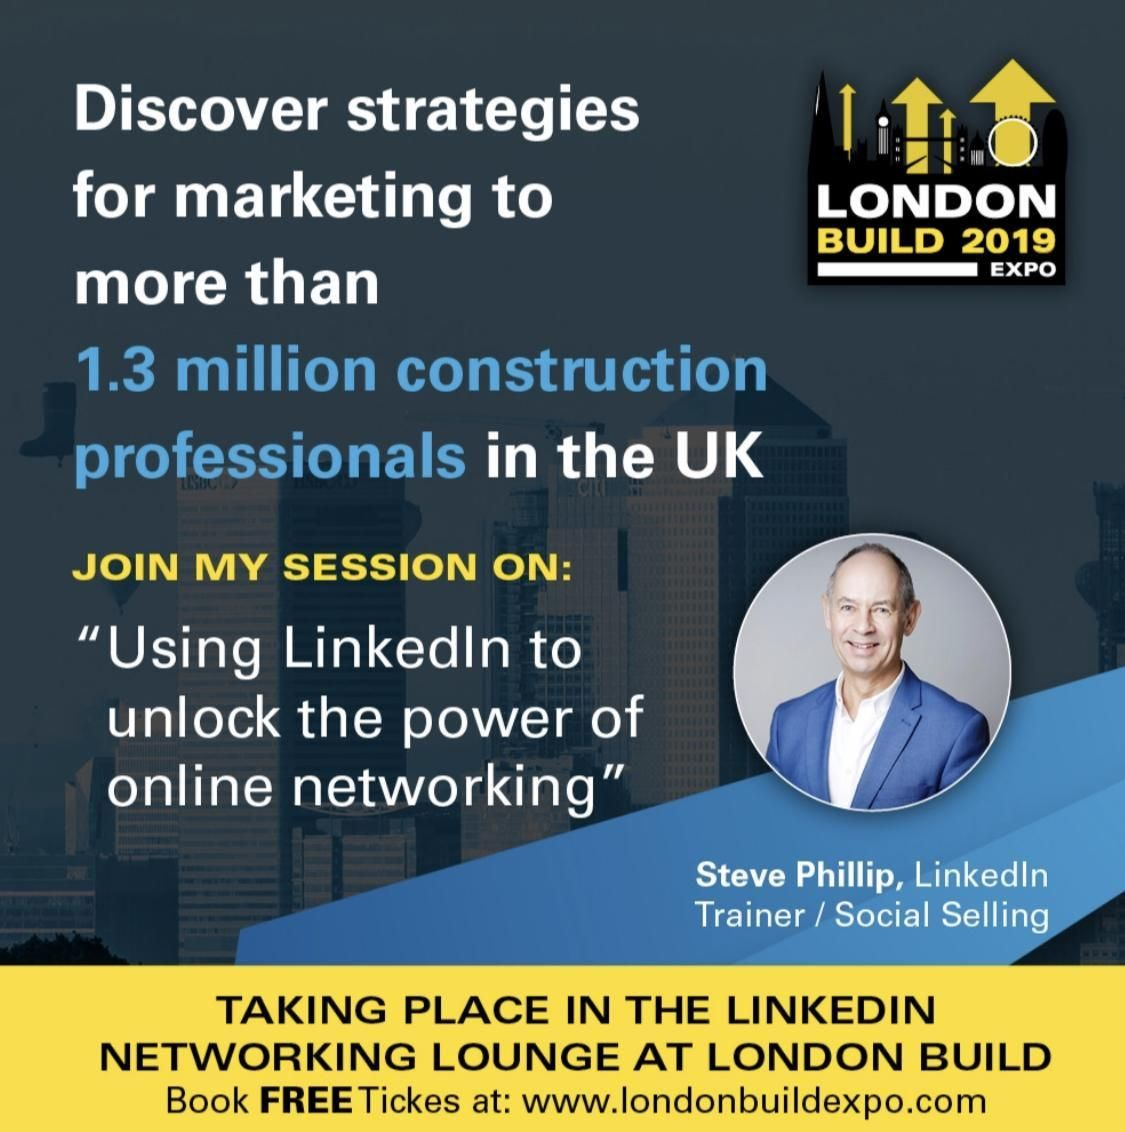 LINKEDIN SESSIONS & NETWORKING EVENT WITH COMPLIMENTARY BUBBLES